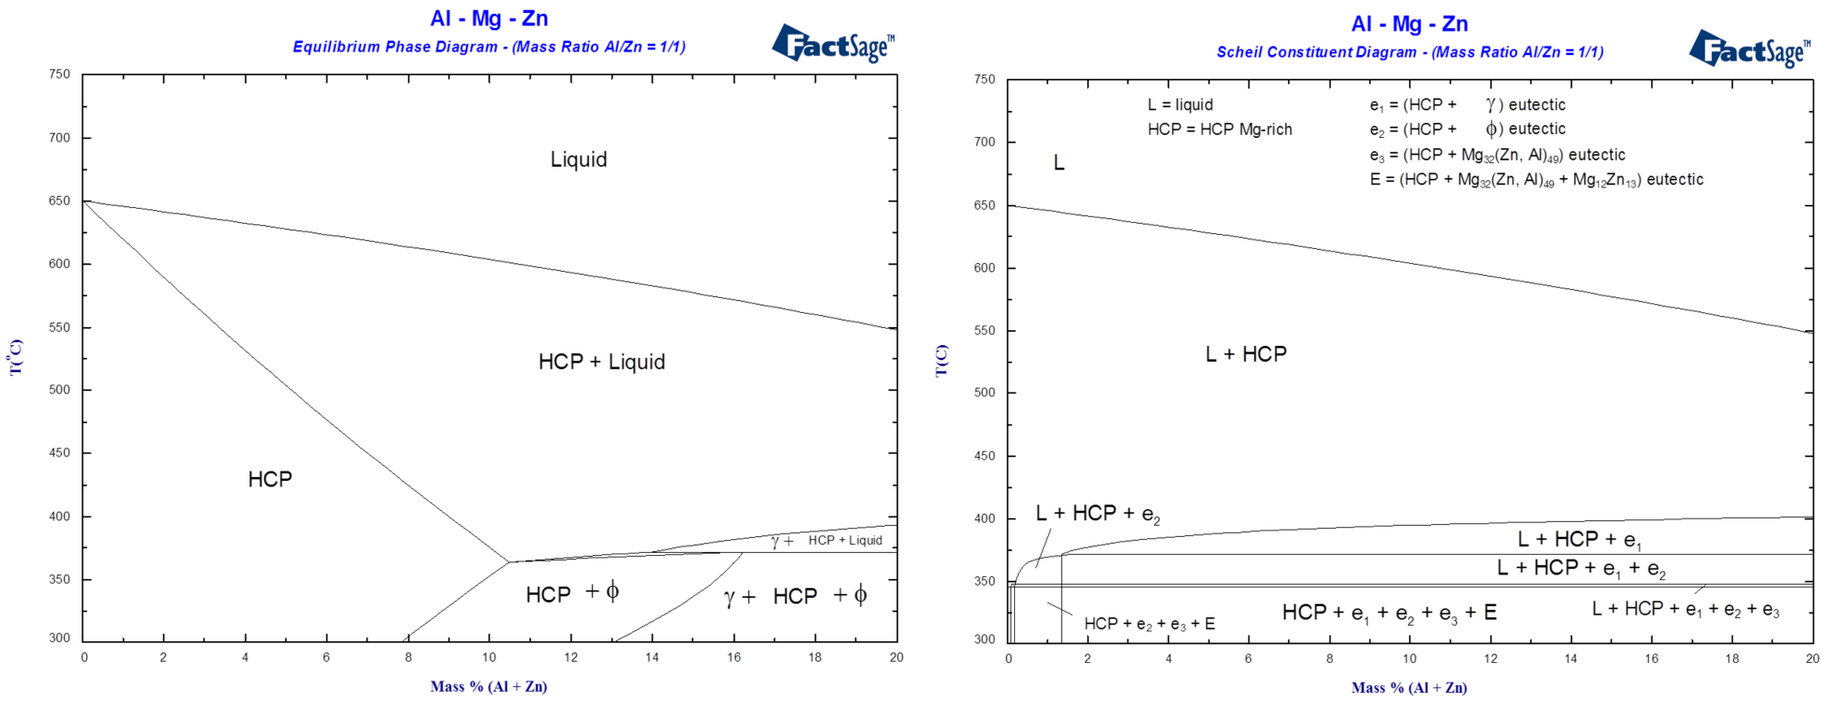 hight resolution of diagrams of the al mg zn ternary system for mg rich alloys at constant mass ratio al zn 1 1 1 calculated phase diagram and equilibrium solidification